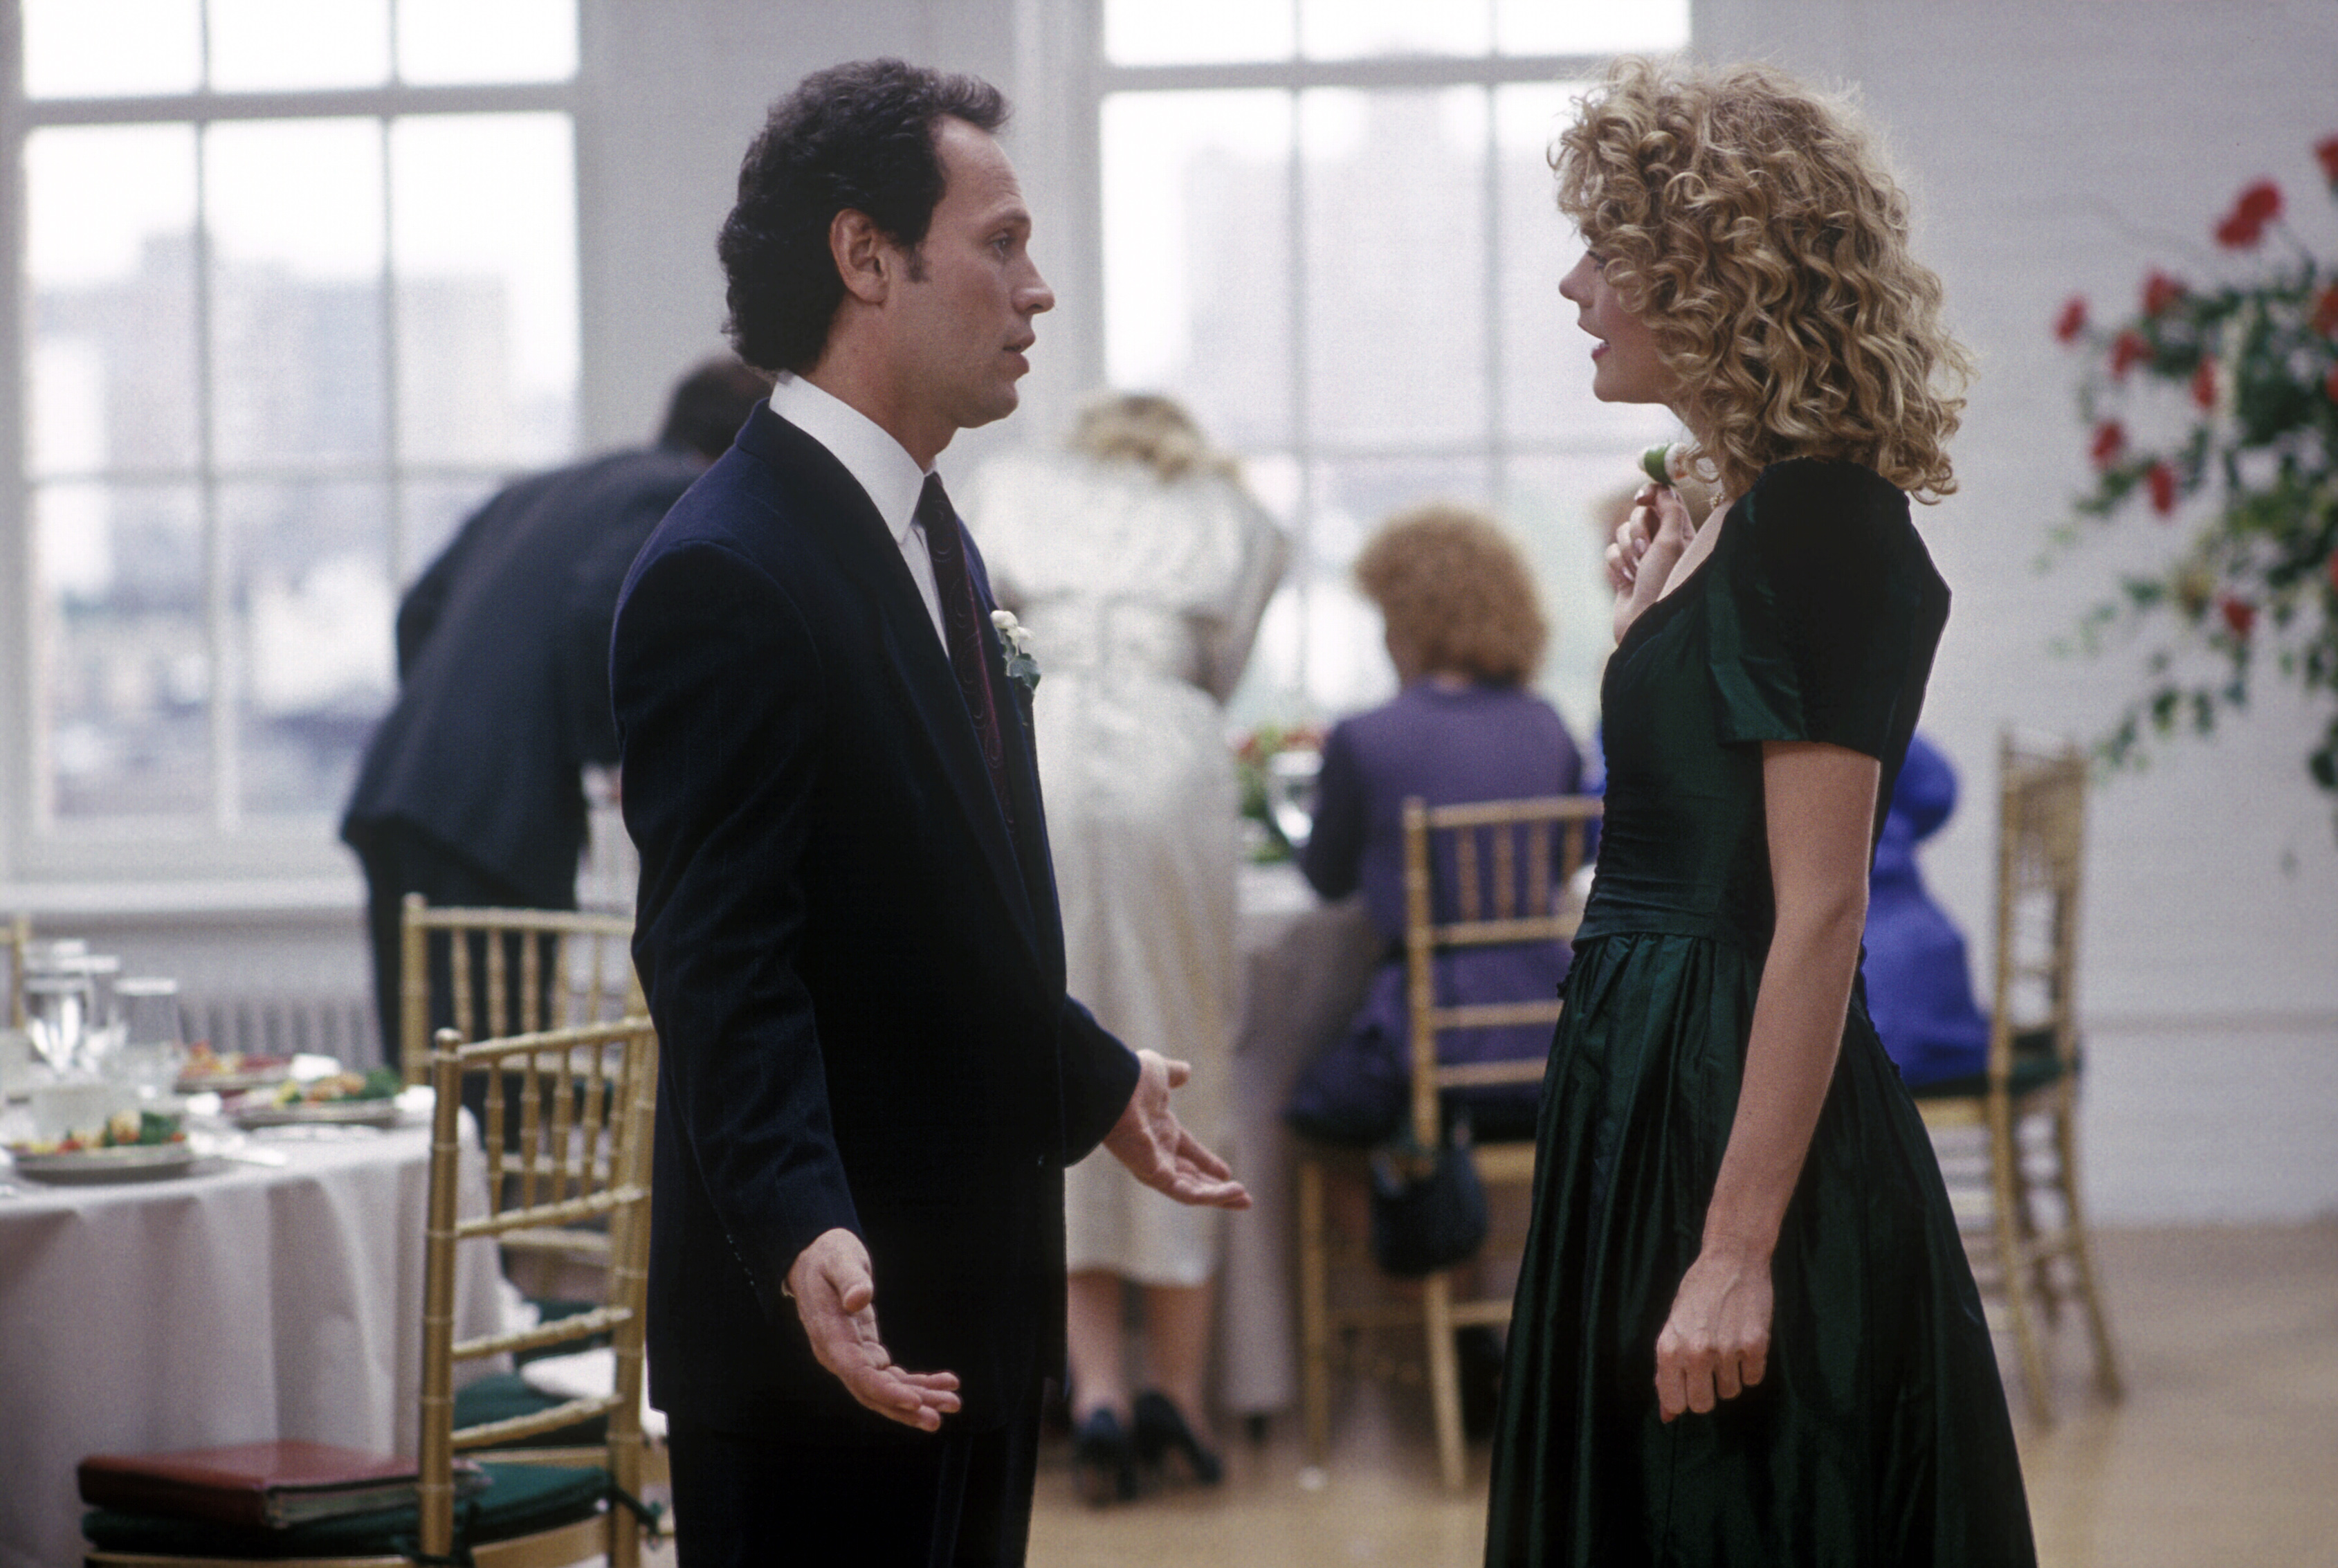 6. When Harry Met Sally (1989)